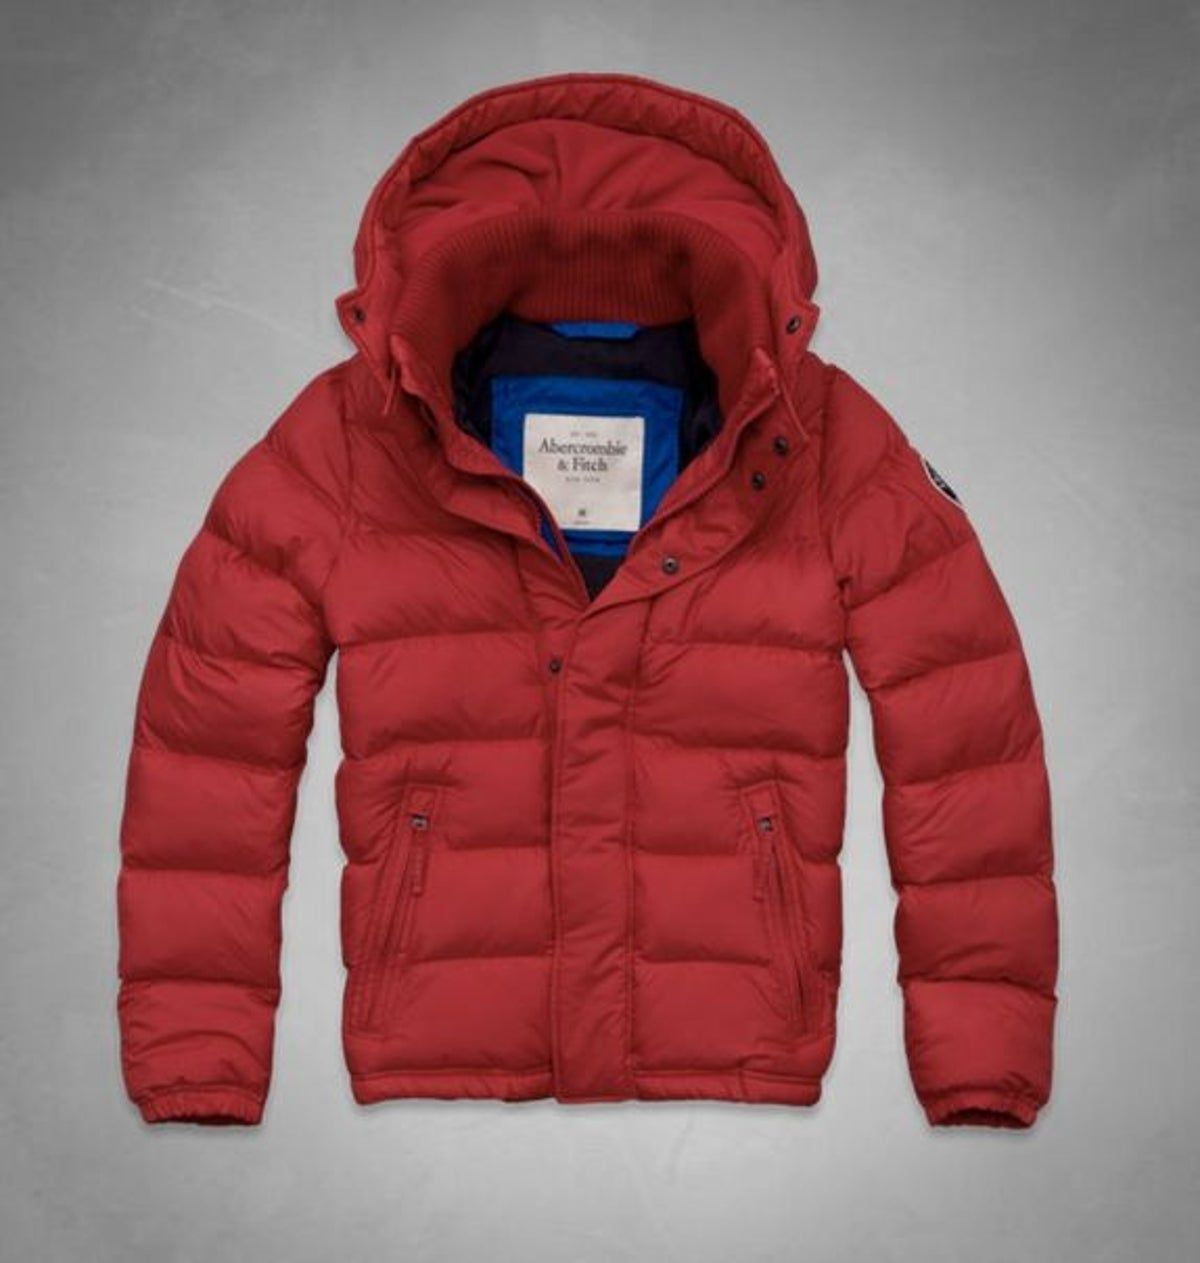 Pin By Jean On Winter Mens Puffer Jacket Abercrombie And Fitch Outfit Red Puffer Jacket [ 1263 x 1200 Pixel ]